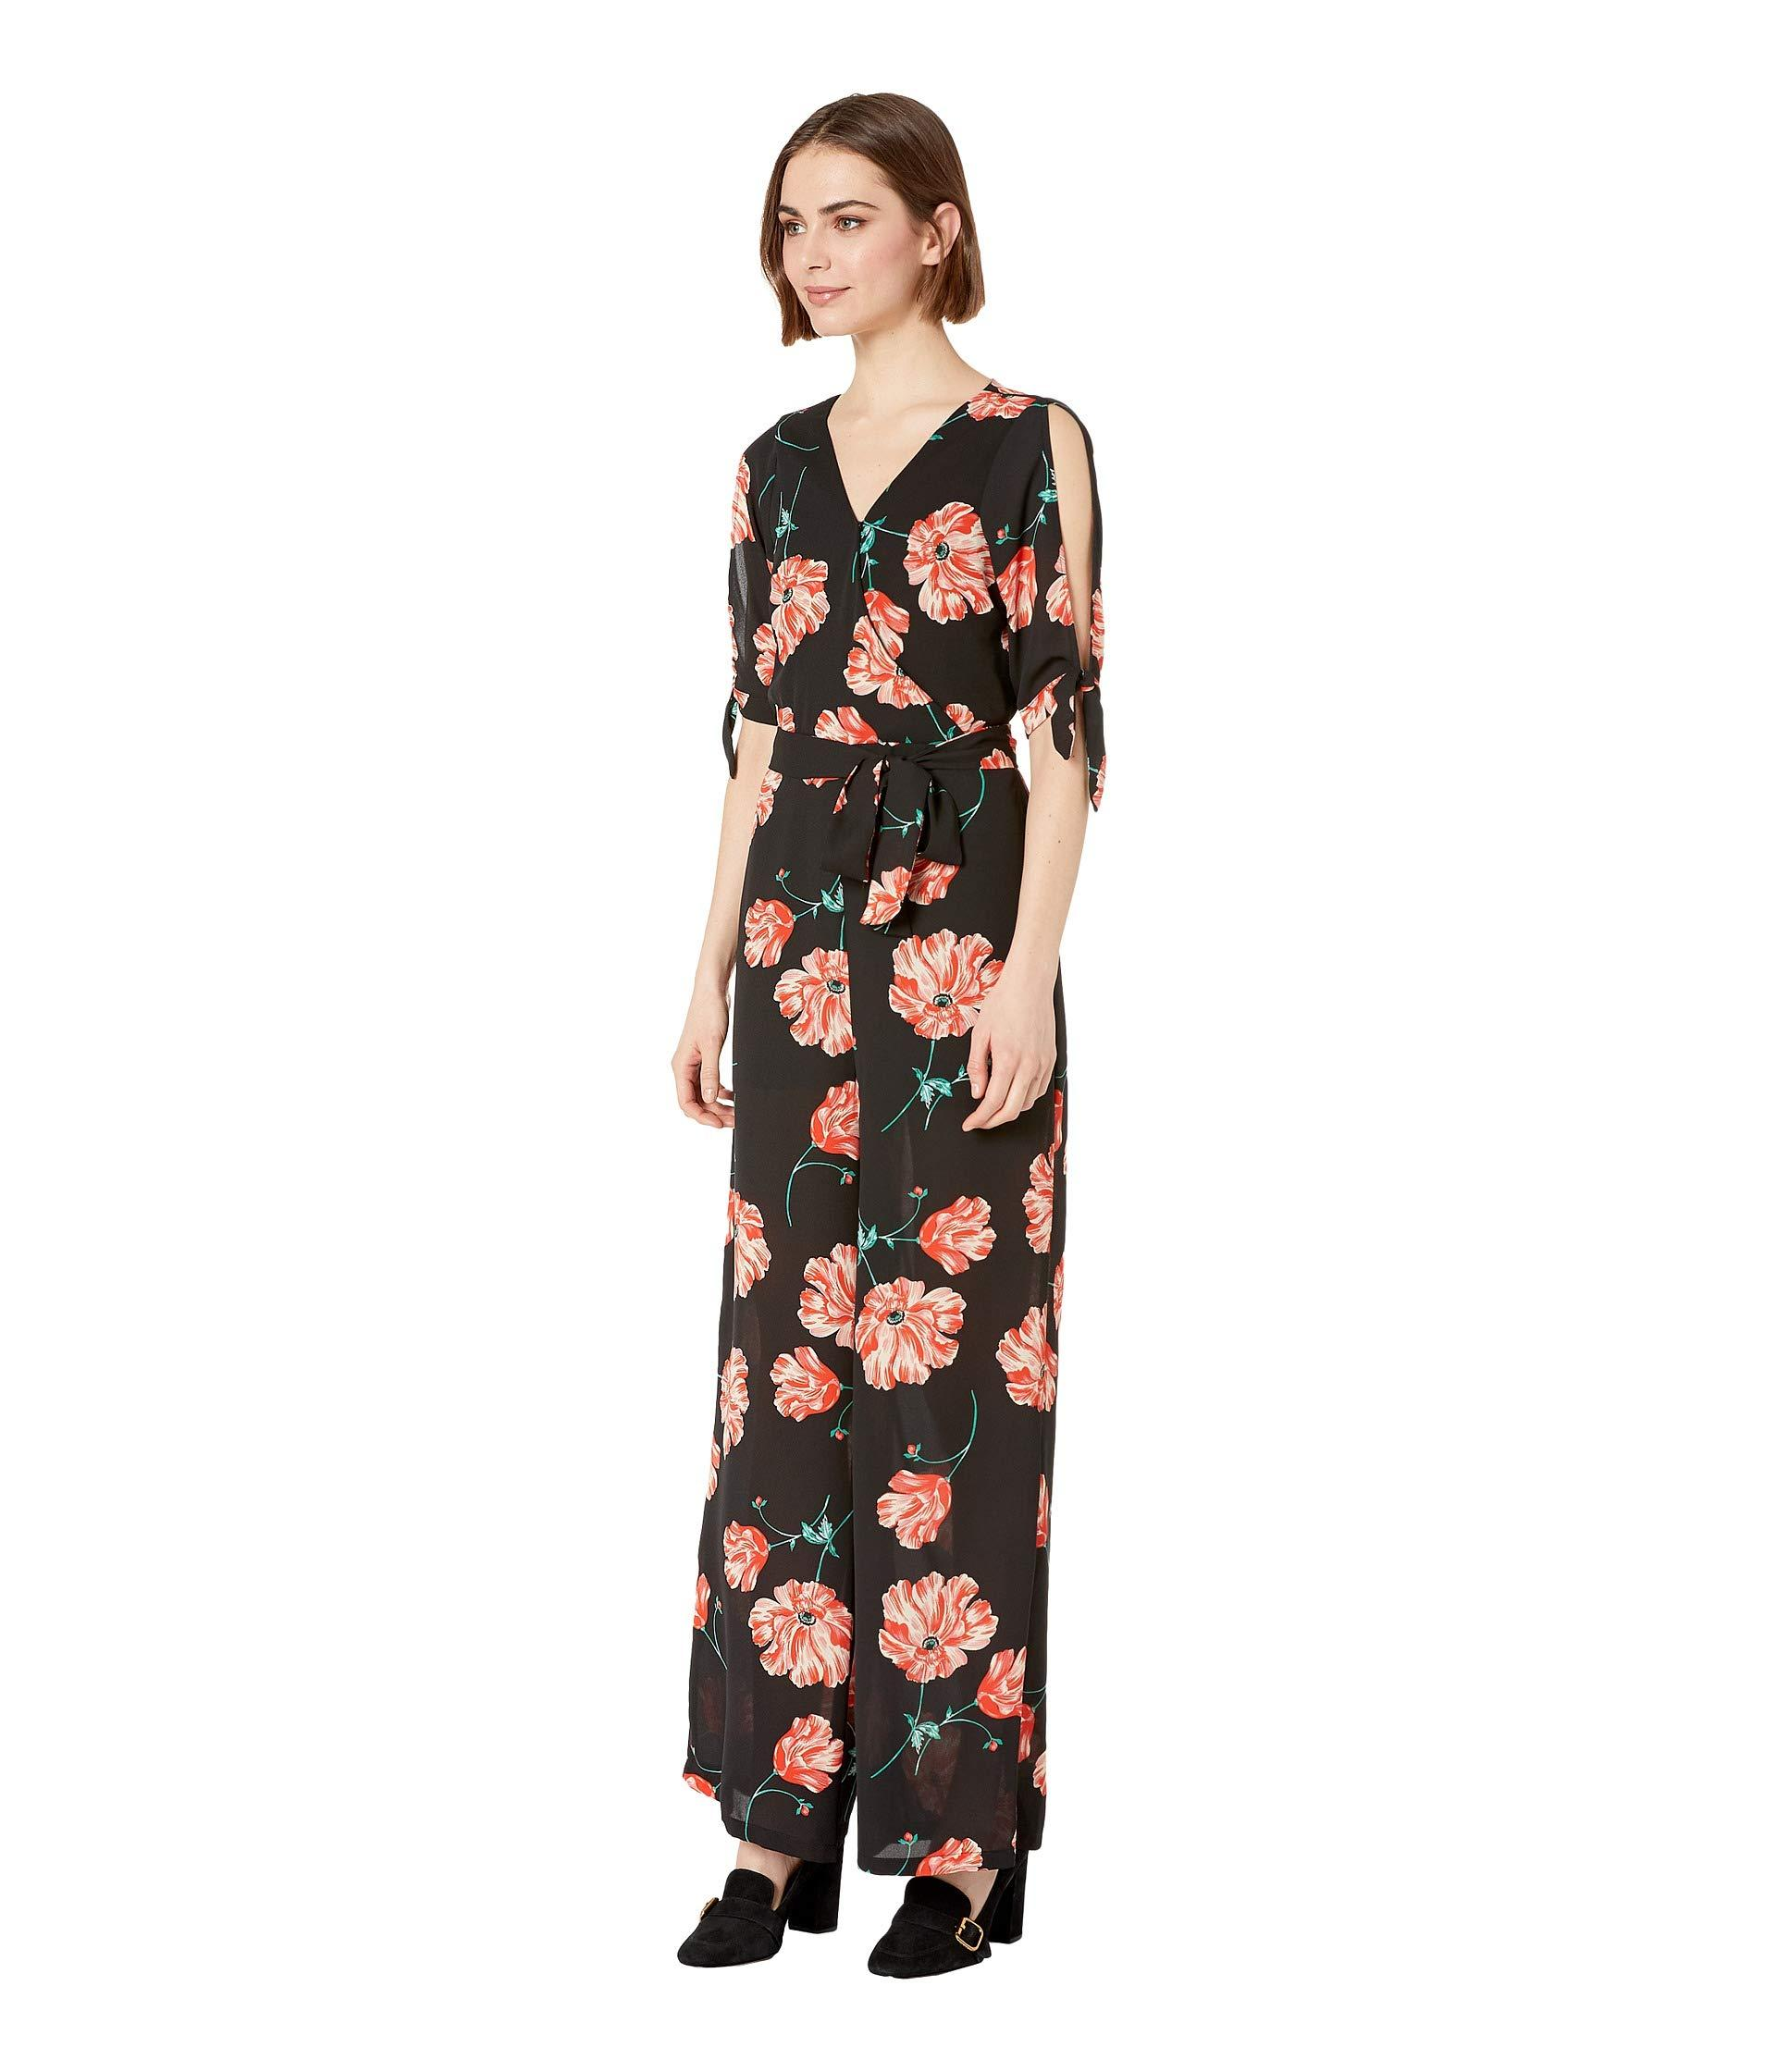 171a601a3c8f88 Jack BB Dakota Do You Poppy Printed Jumpsuit (black) Women's Jumpsuit &  Rompers One Piece in Black - Lyst